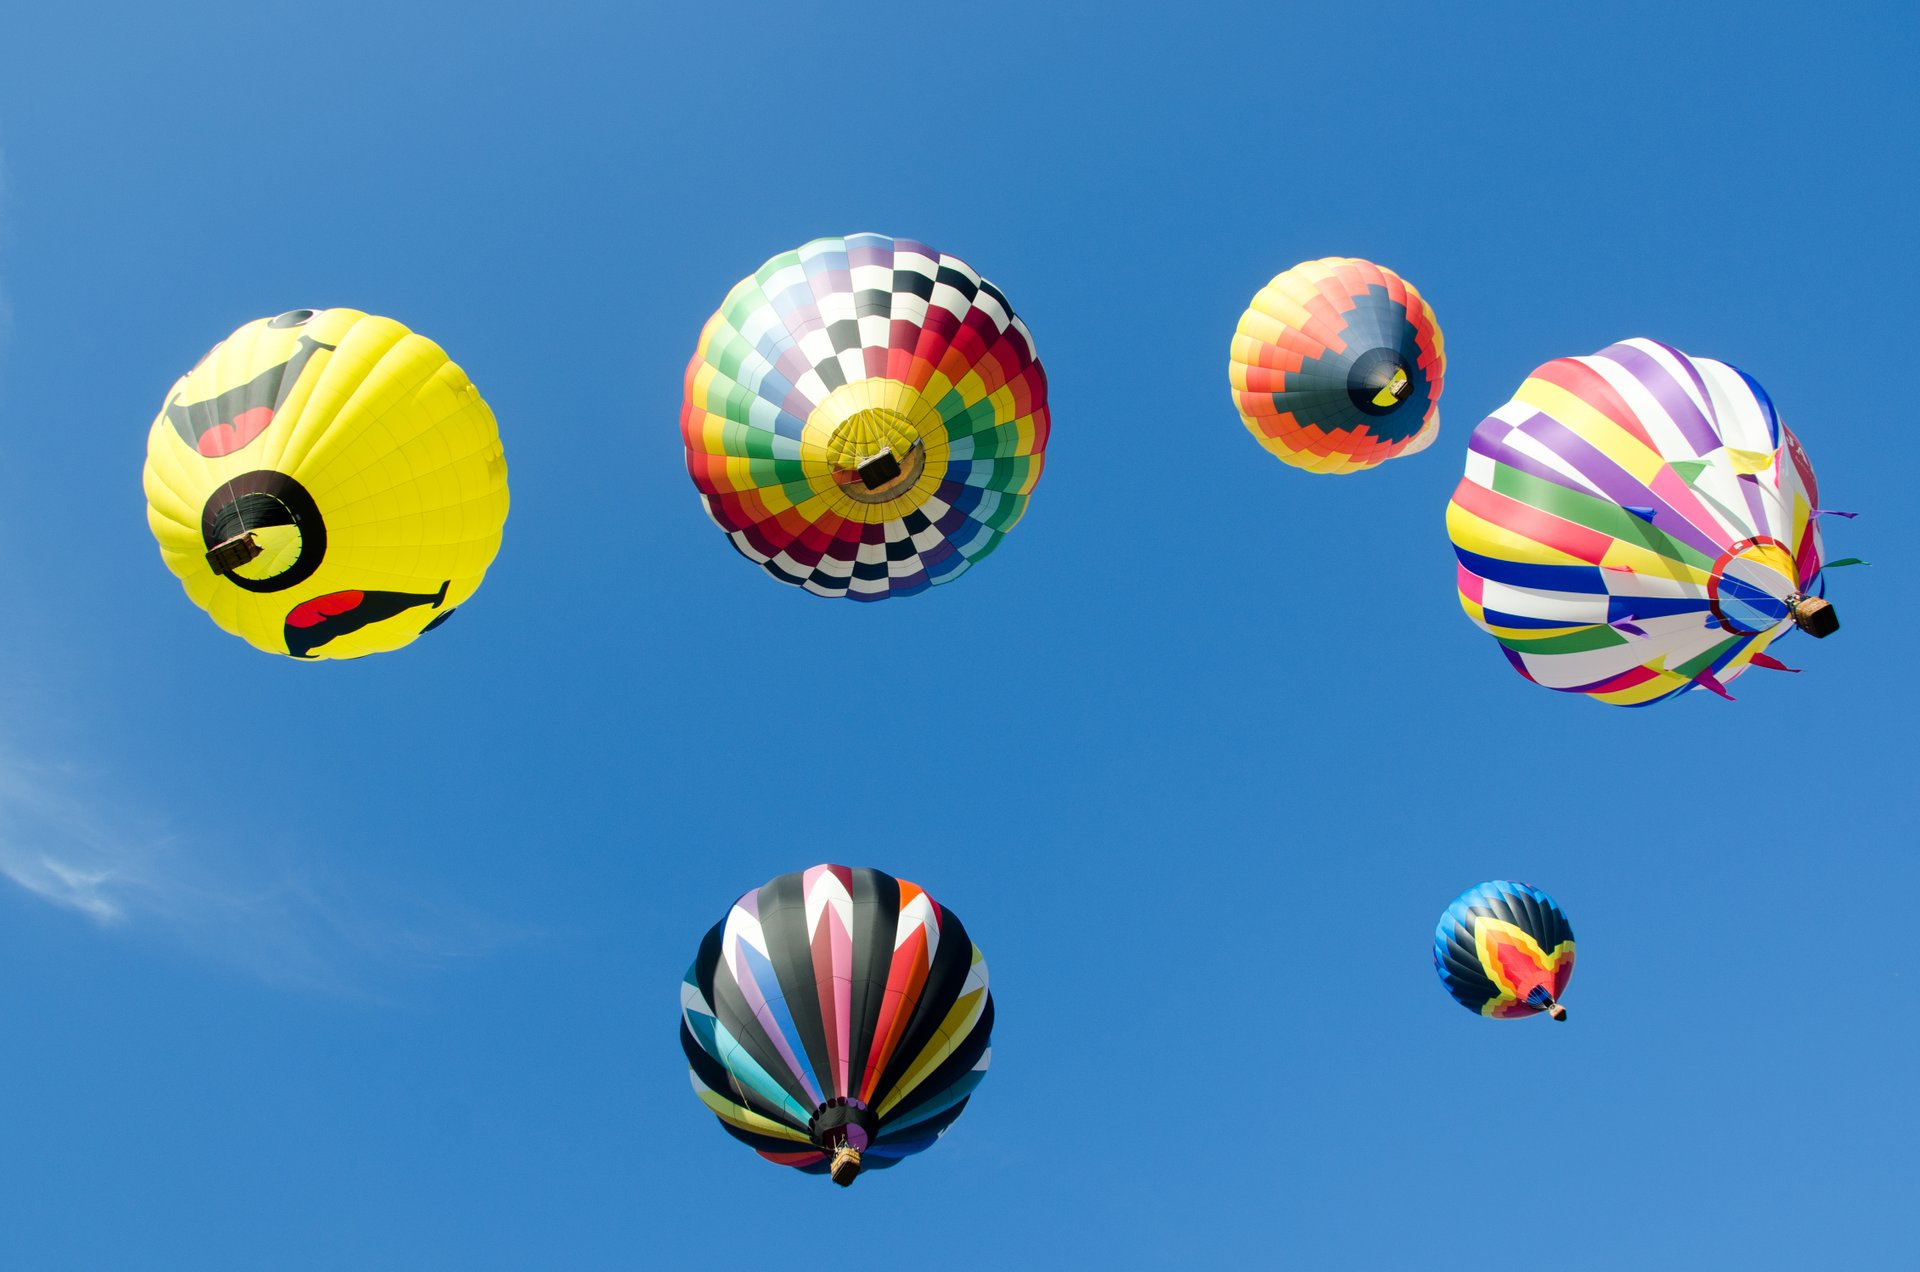 Best time for QuickChek NJ Festival of Ballooning in New Jersey 2020